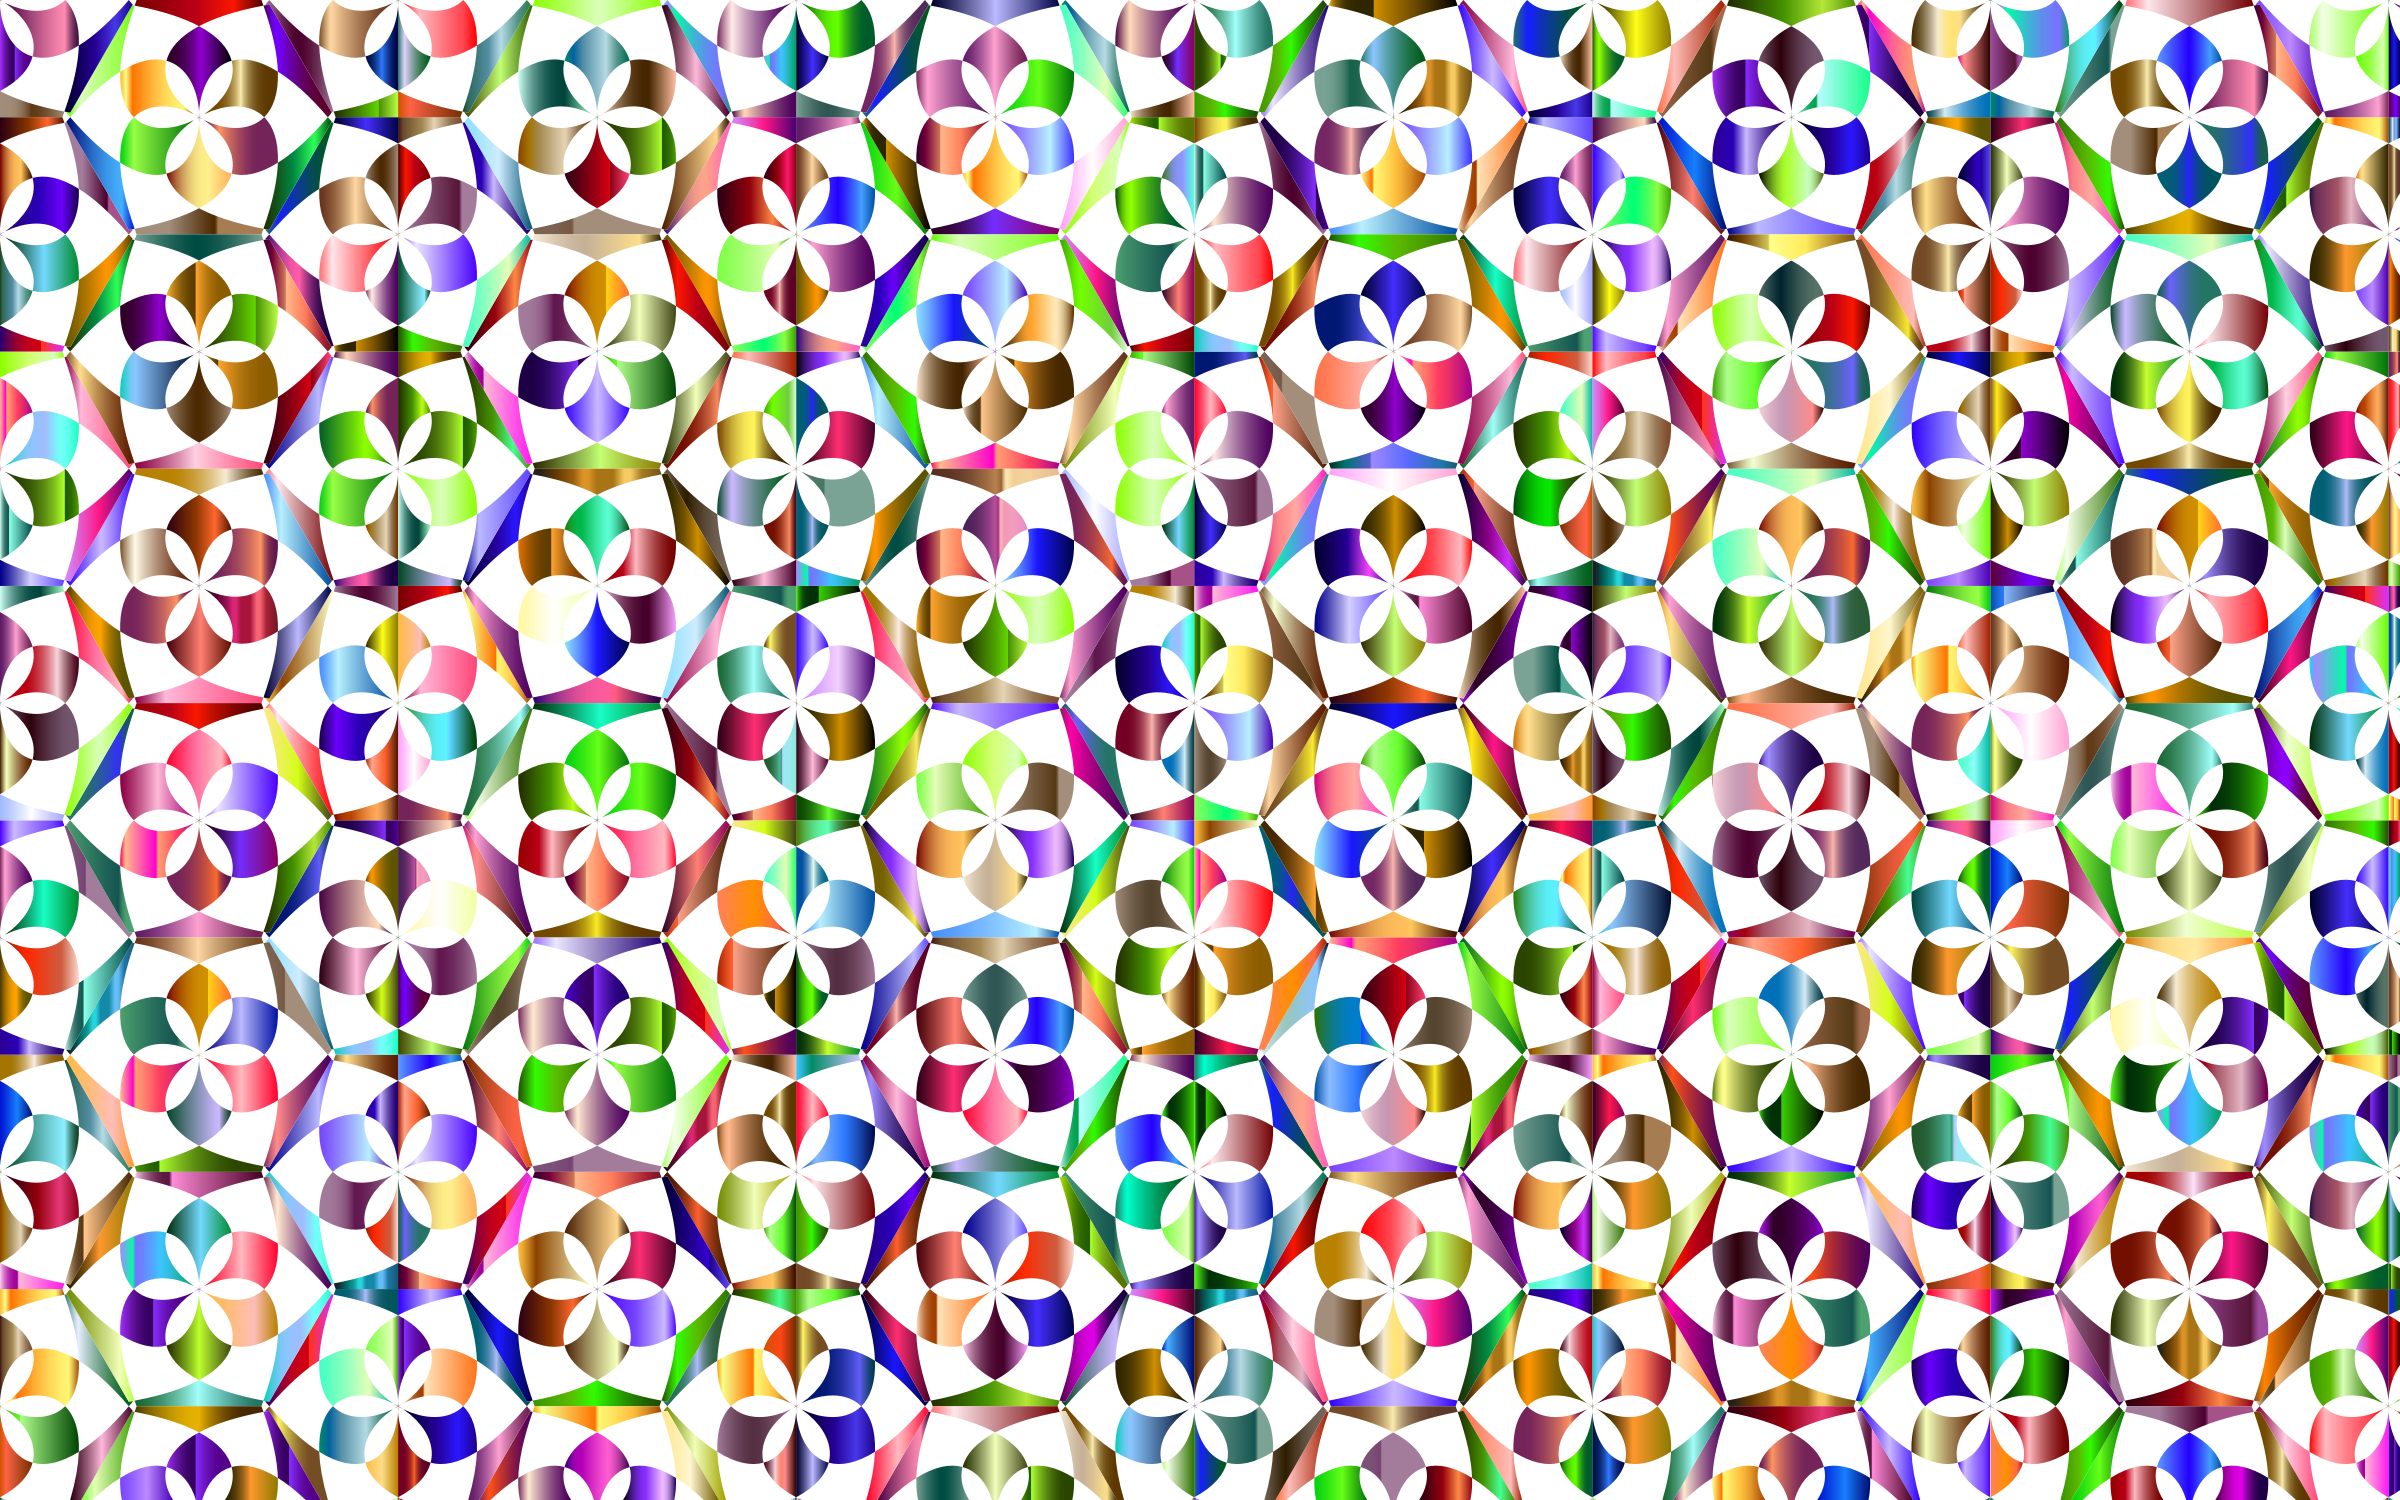 Prismatic Floral Pattern 3 Variation 3 No Background by GDJ